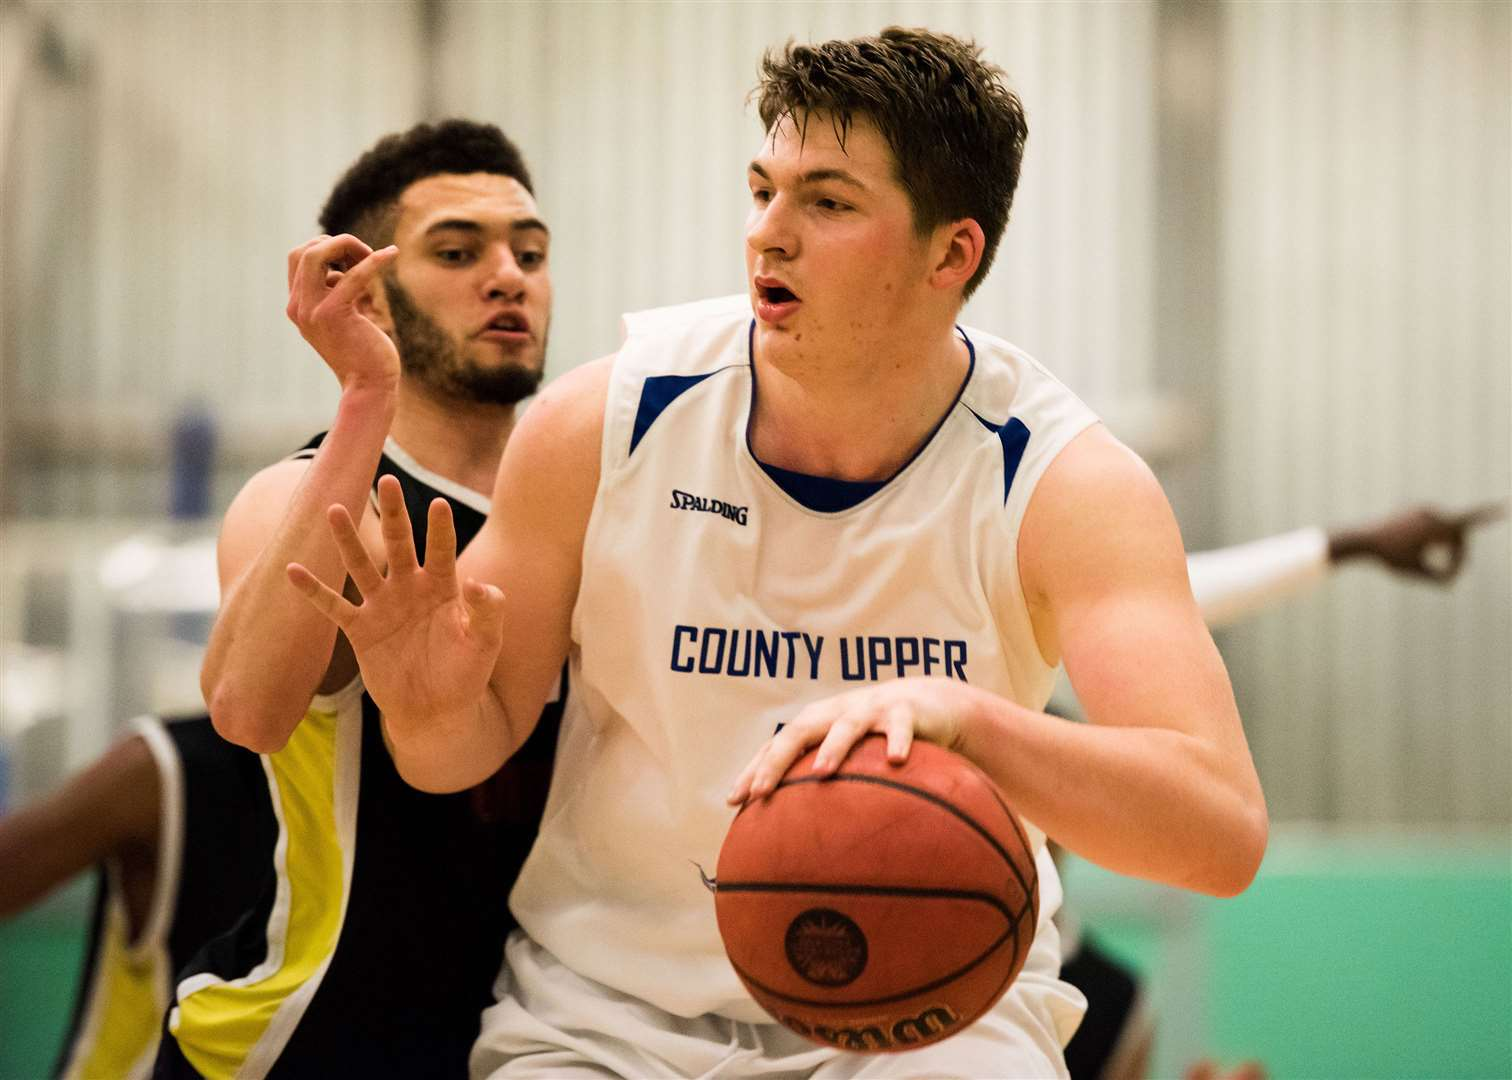 BURY: Bury St Edmunds County Upper U19 Elite basketball Bradley Day,- last home game 4.15 tip-off versus Gateway College from LeicesterPicture Mark Westley. (36388586)